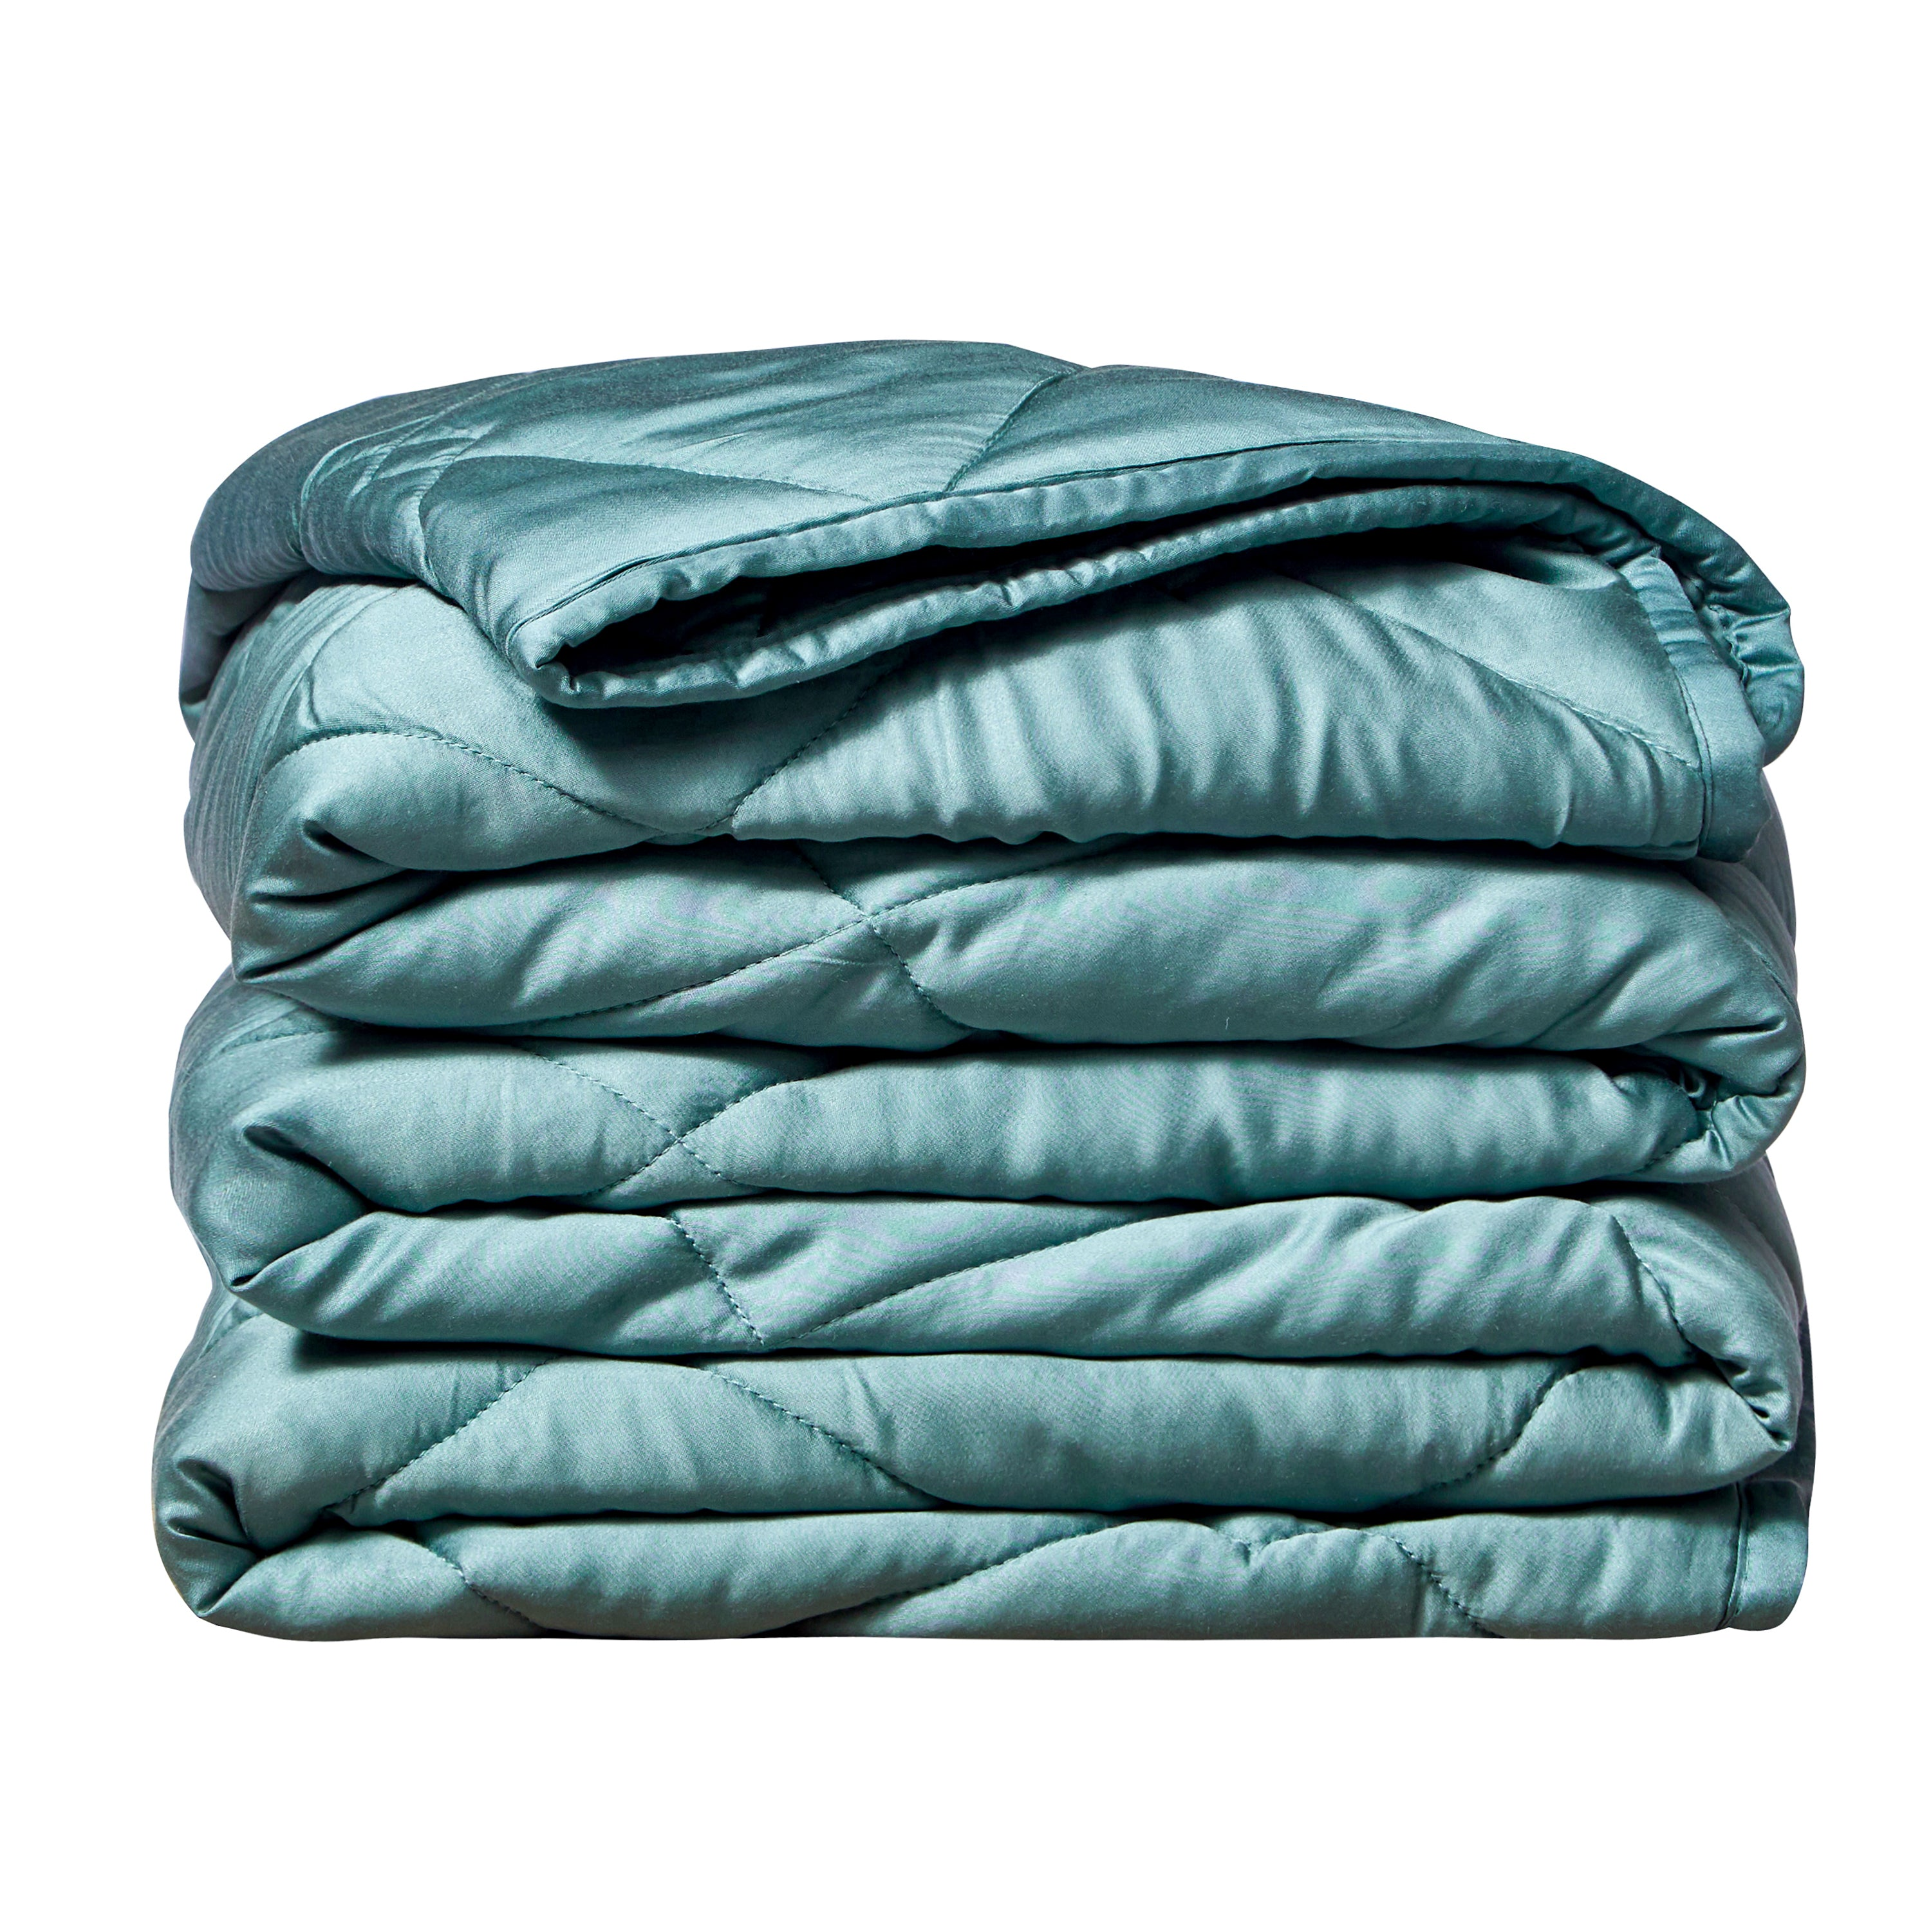 Breathable Bamboo Weighted Blanket- 10, 12 & 15 lb